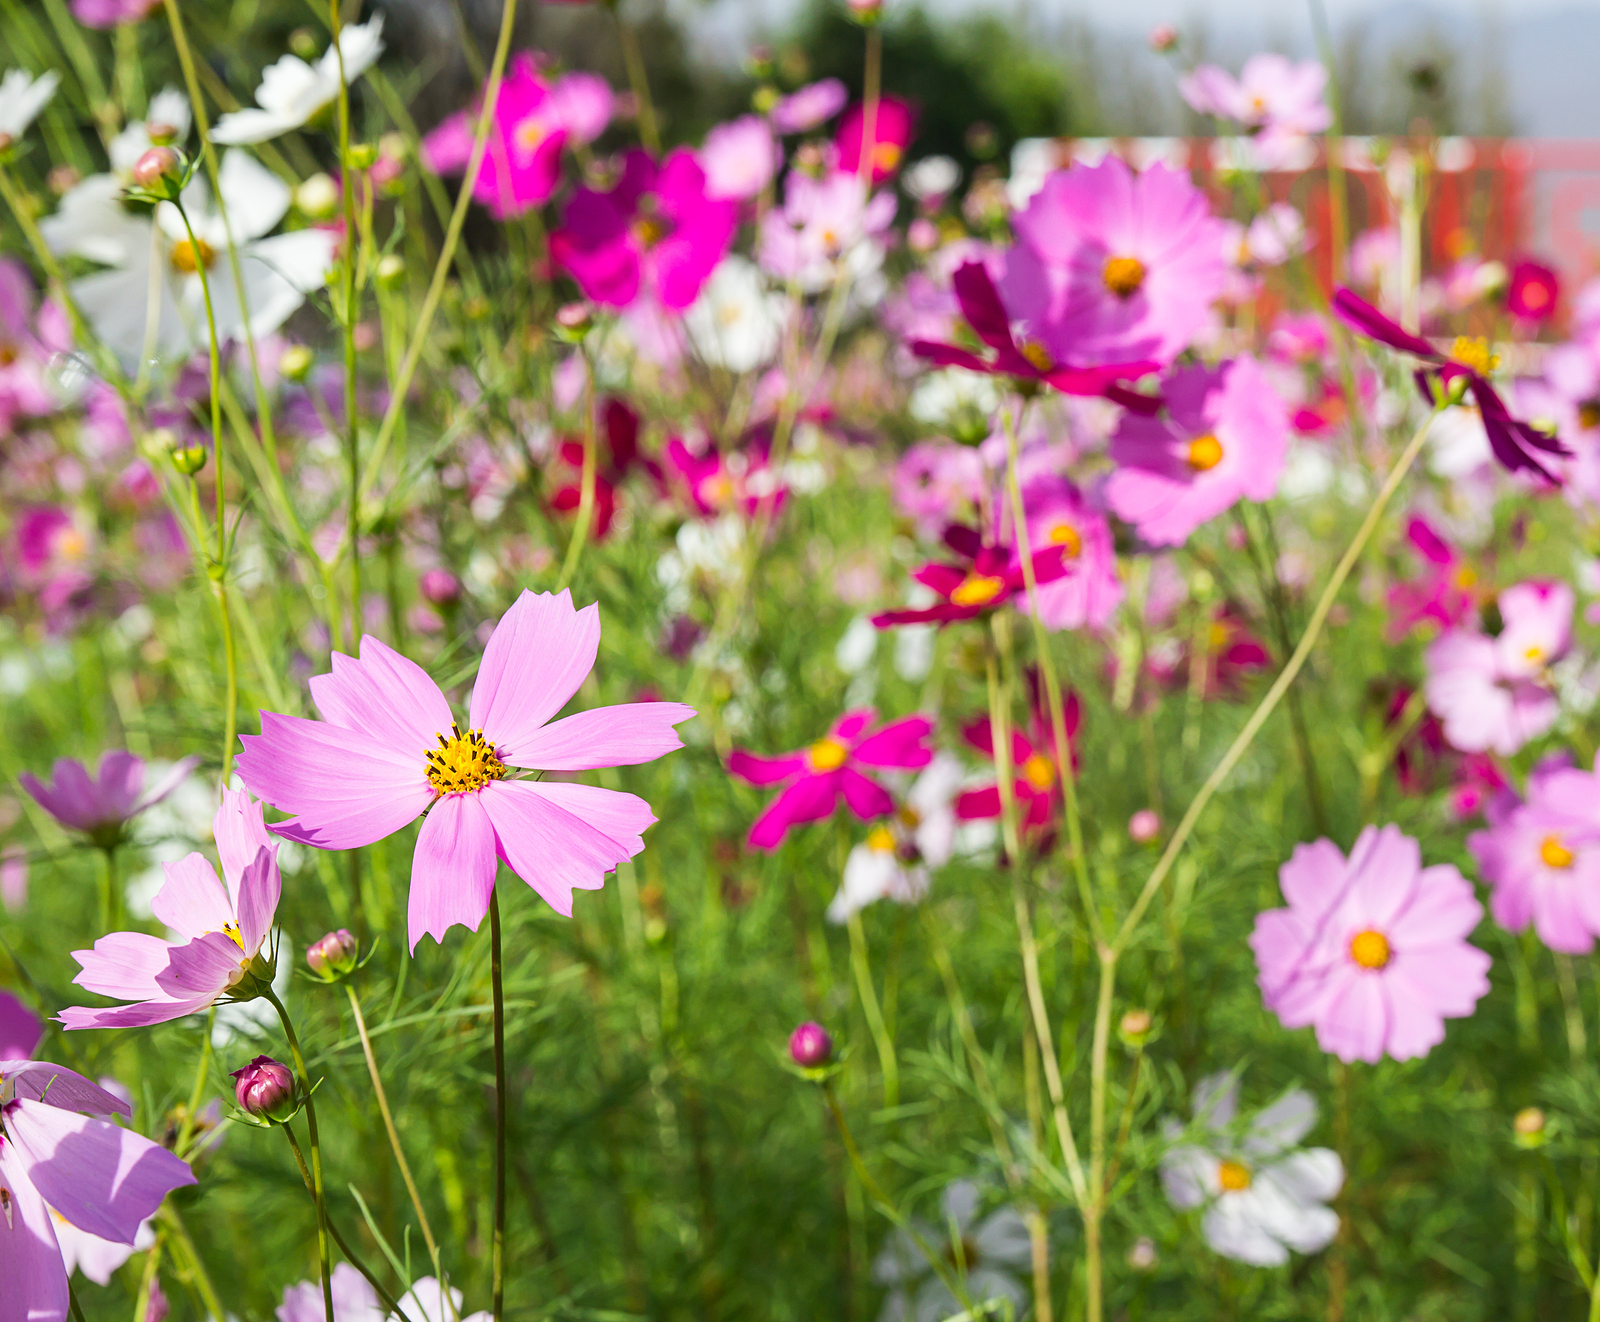 bigstock-Cosmos-Flower-In-The-Field-78197294.jpg